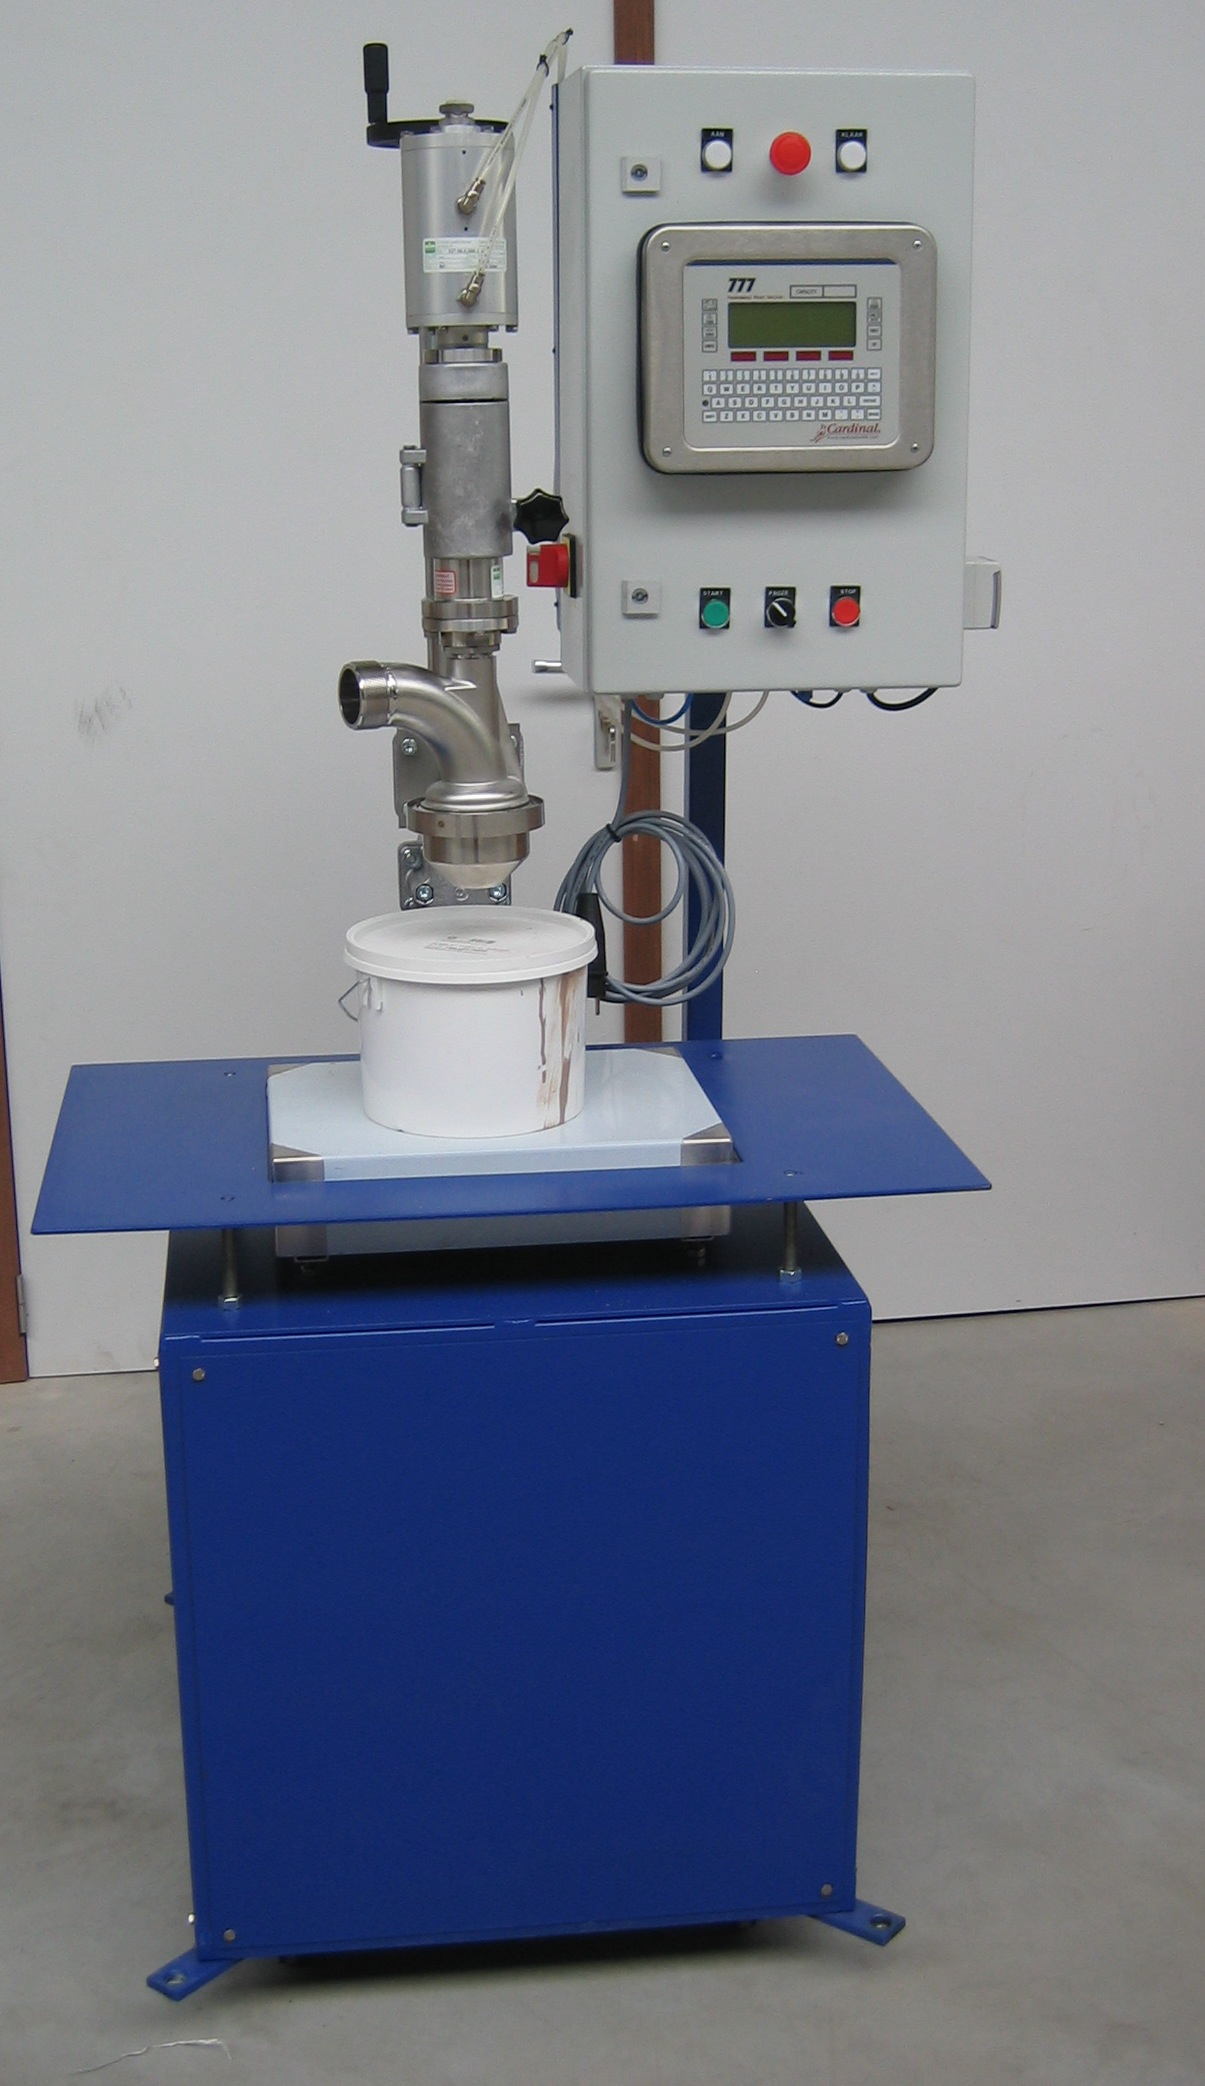 Semi-automated mobile filler for liquids, e.g. paint, glue, sauces, ...